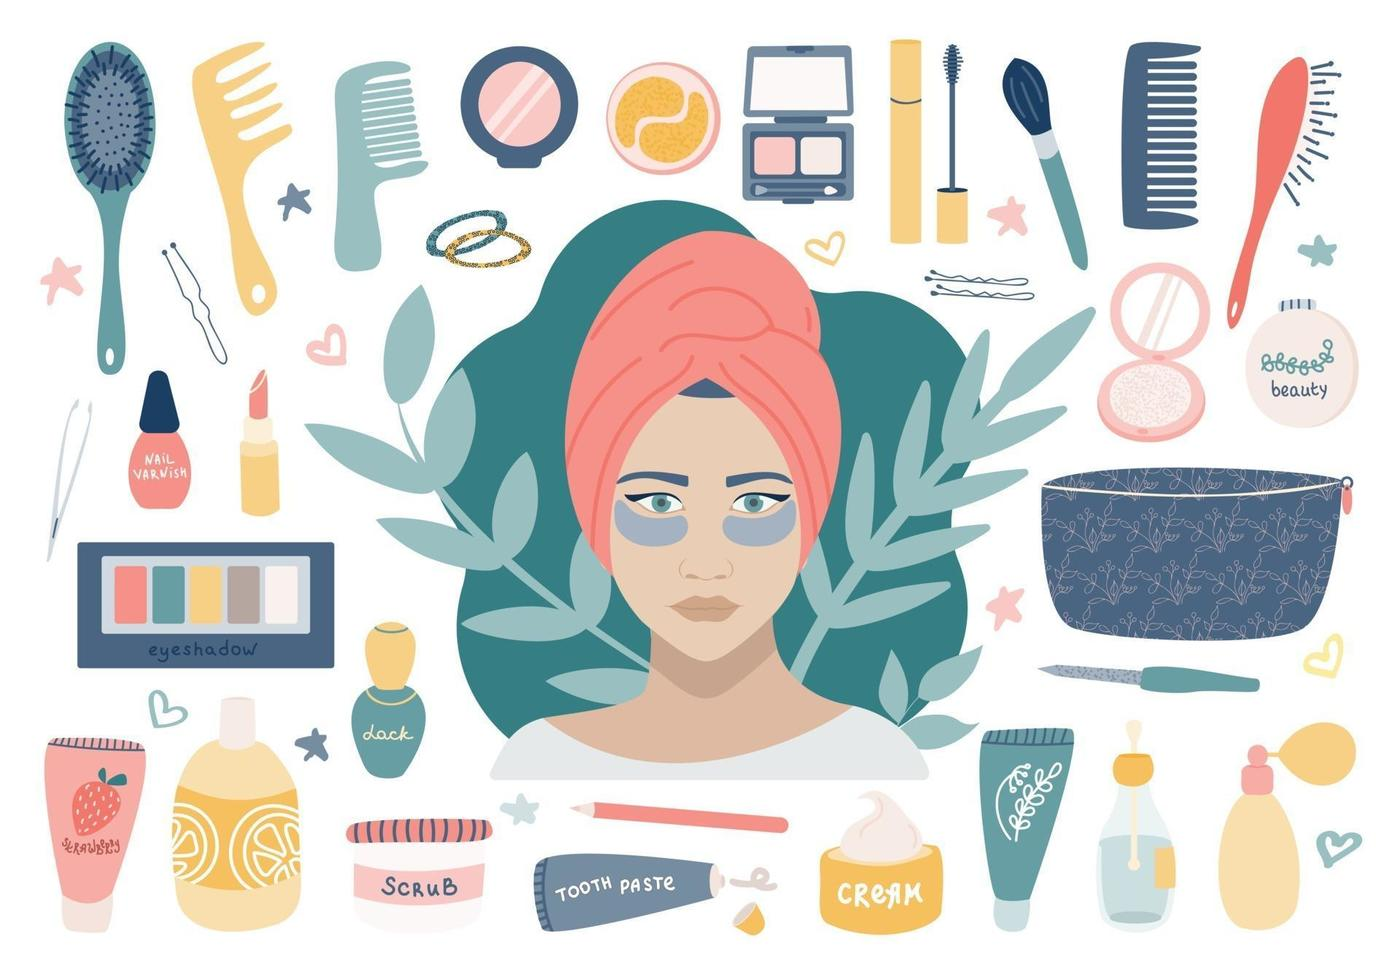 Large cosmetic set with grooming cosmetics. A girl with patches under her eyes, a makeup bag and its contents. Vector image on a white background